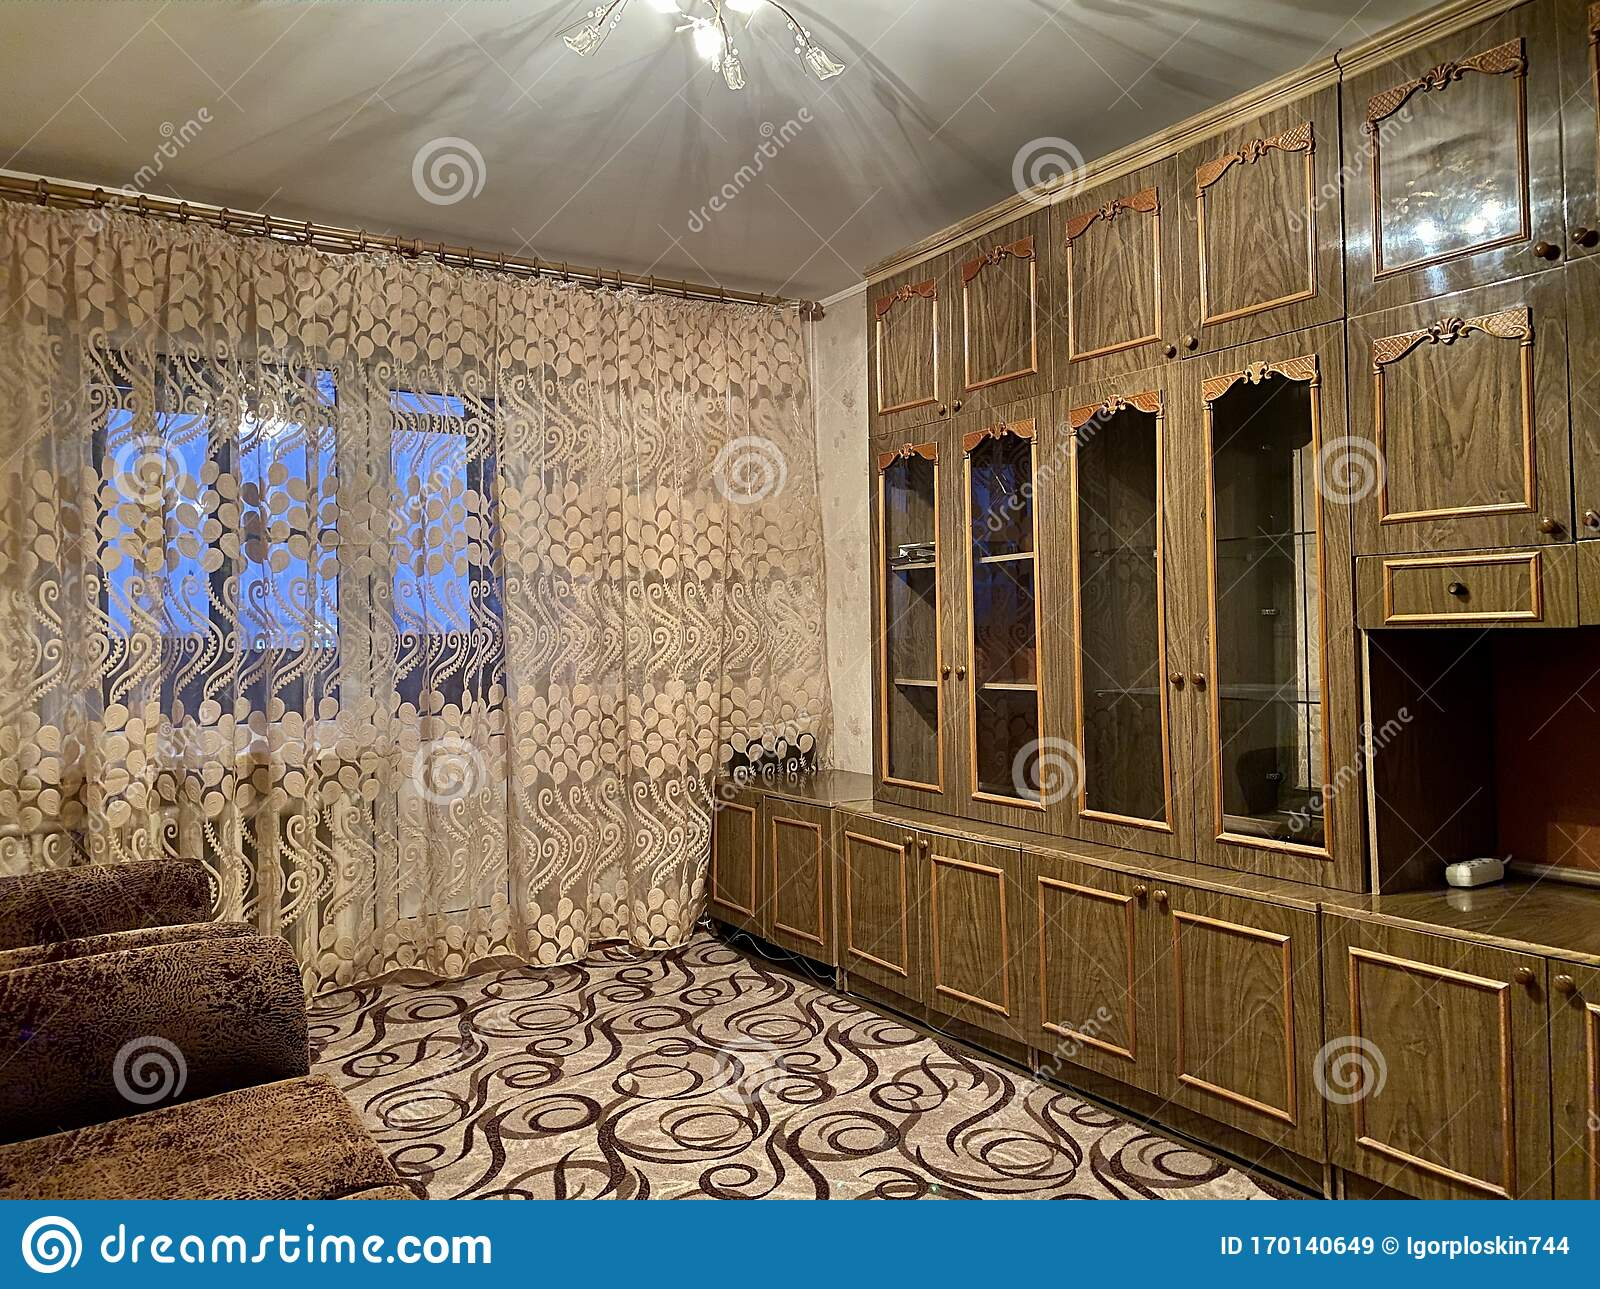 Soviet Room With Carpenter And Wardrobe Stock Image Image Of Lifestyle Decoration 170140649